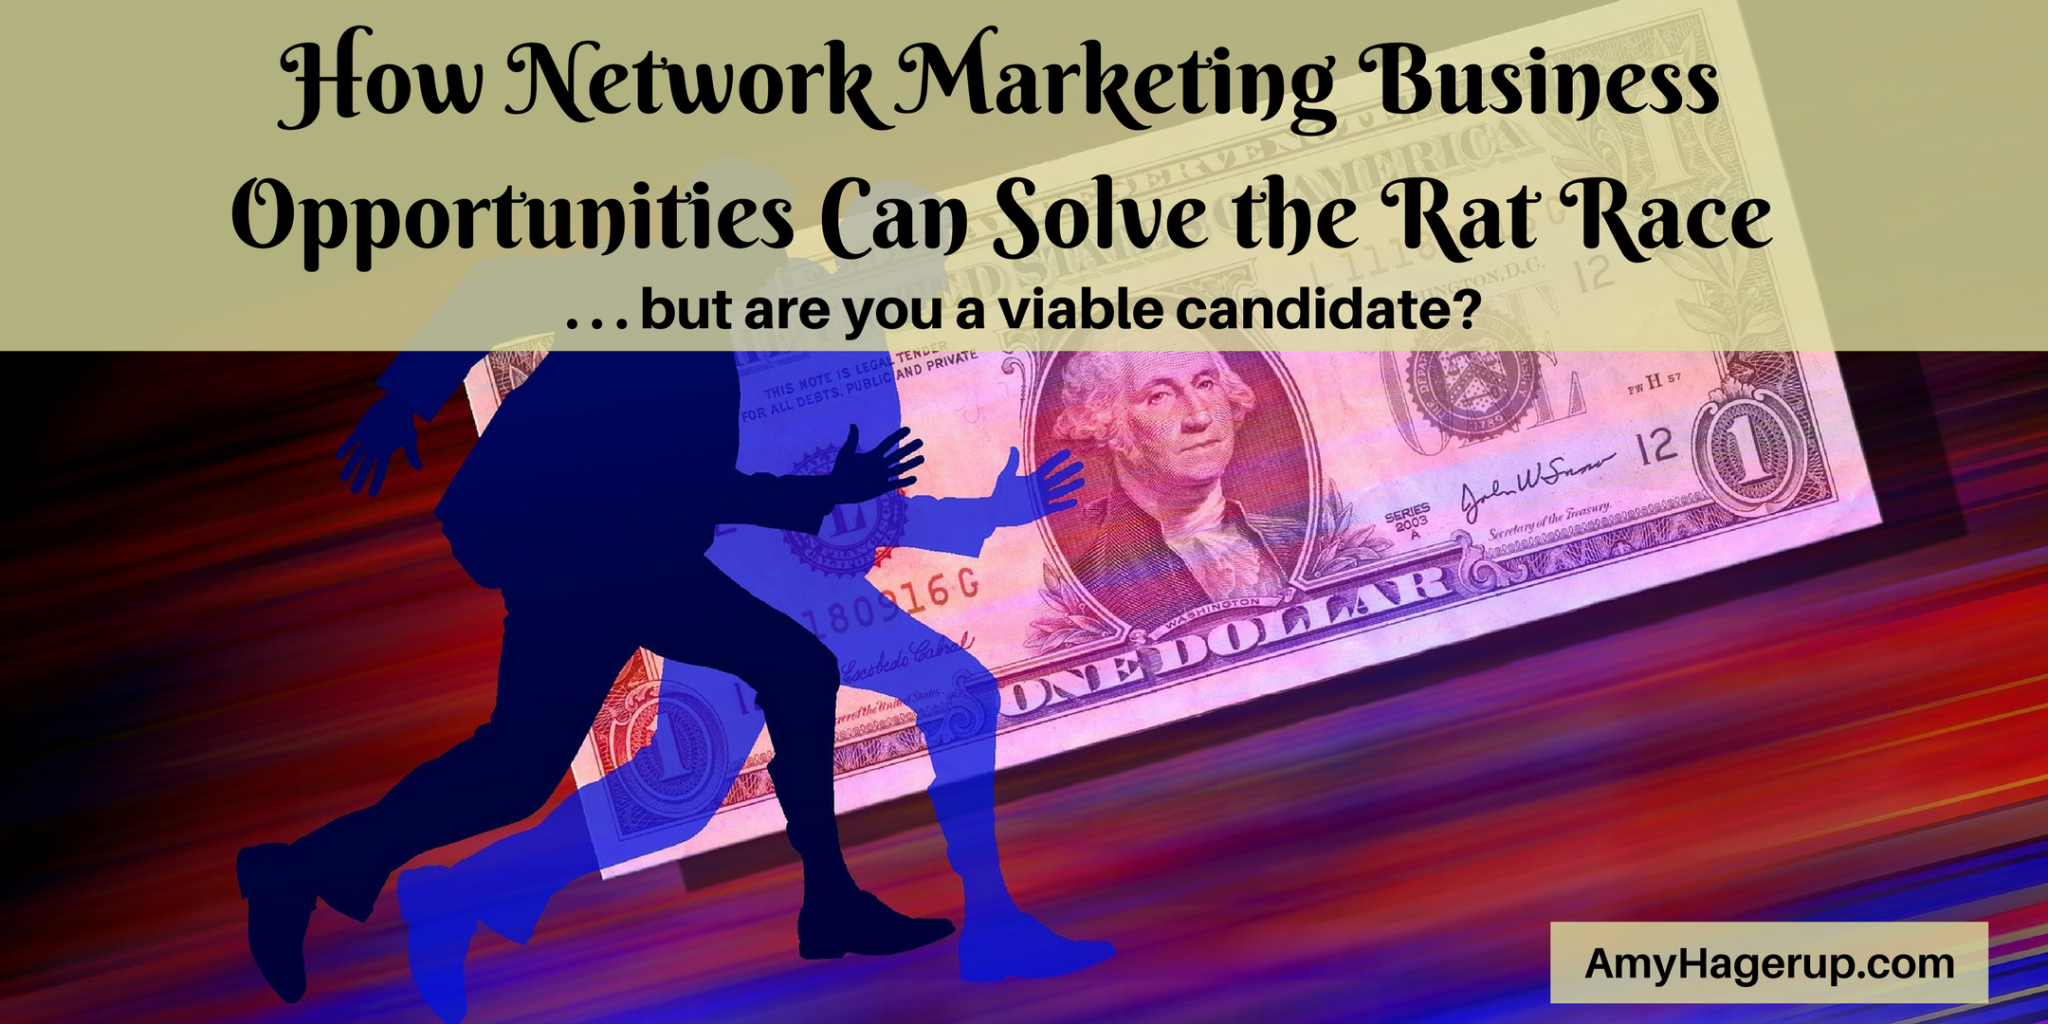 Check out how network marketing business opportunities can solve the rat race syndrome.